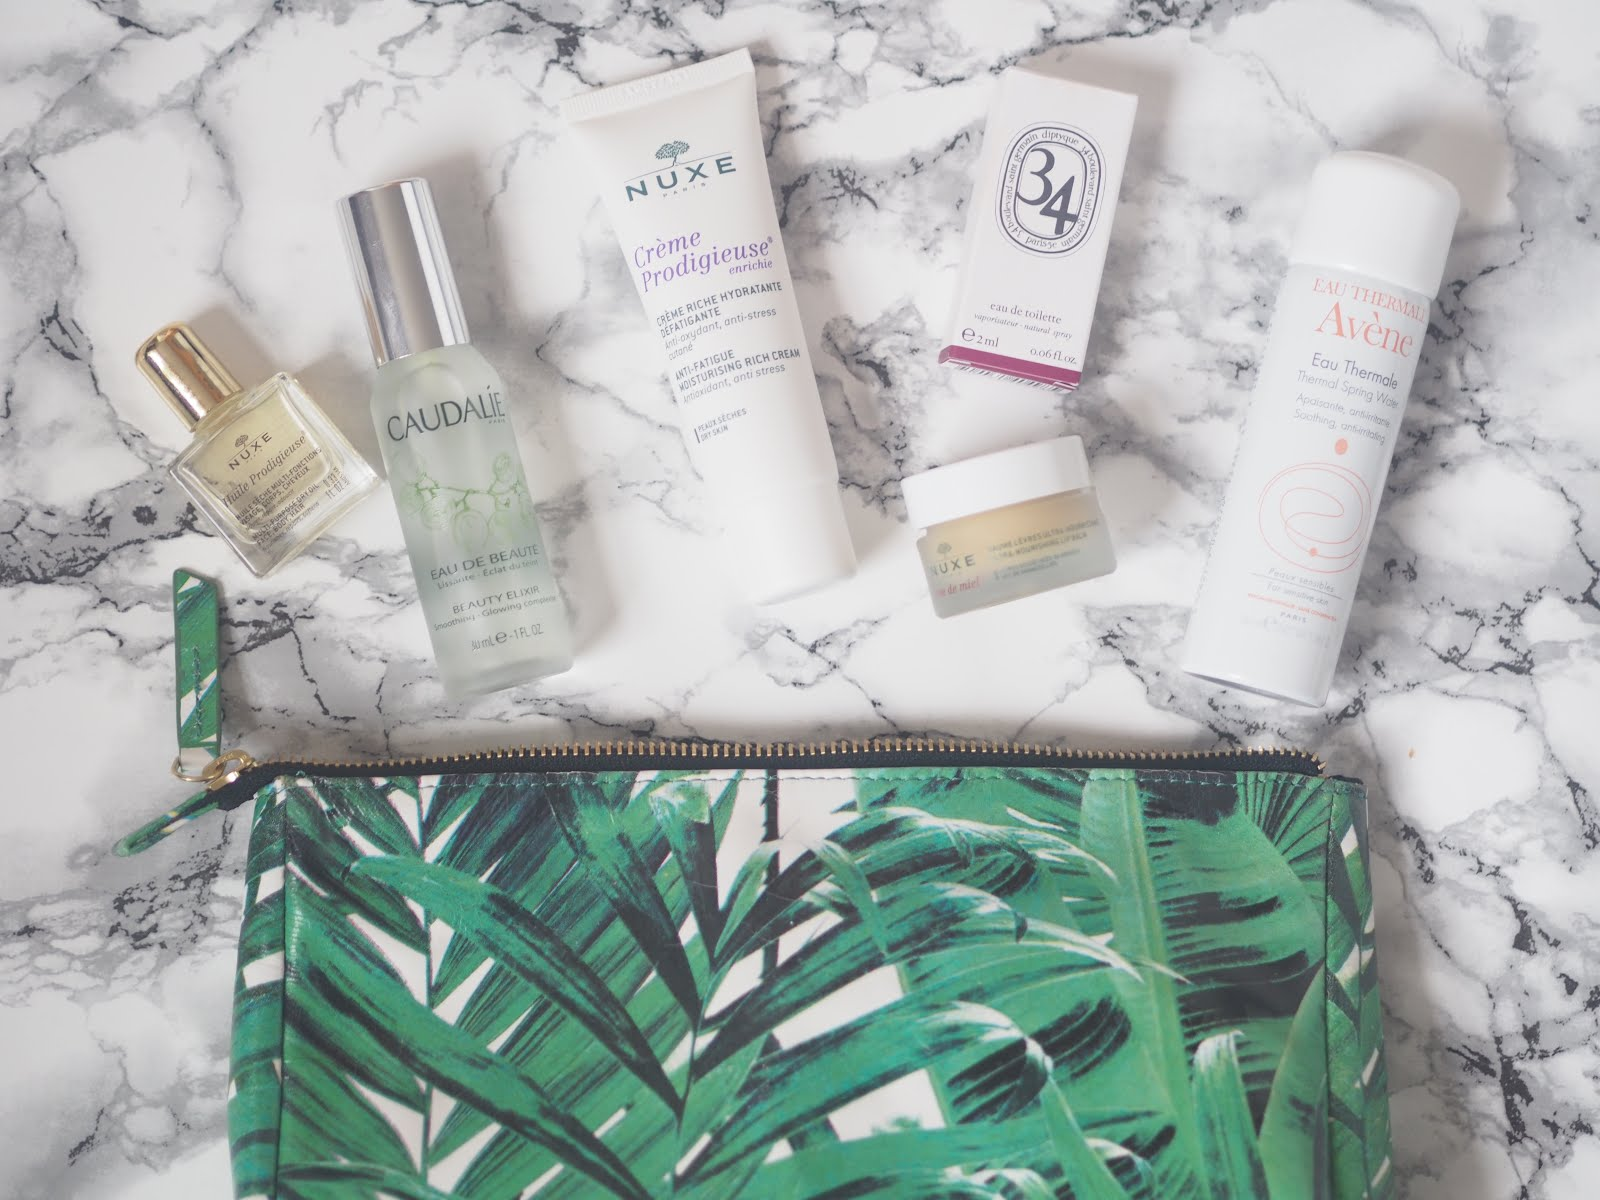 Products to Take on a Flight